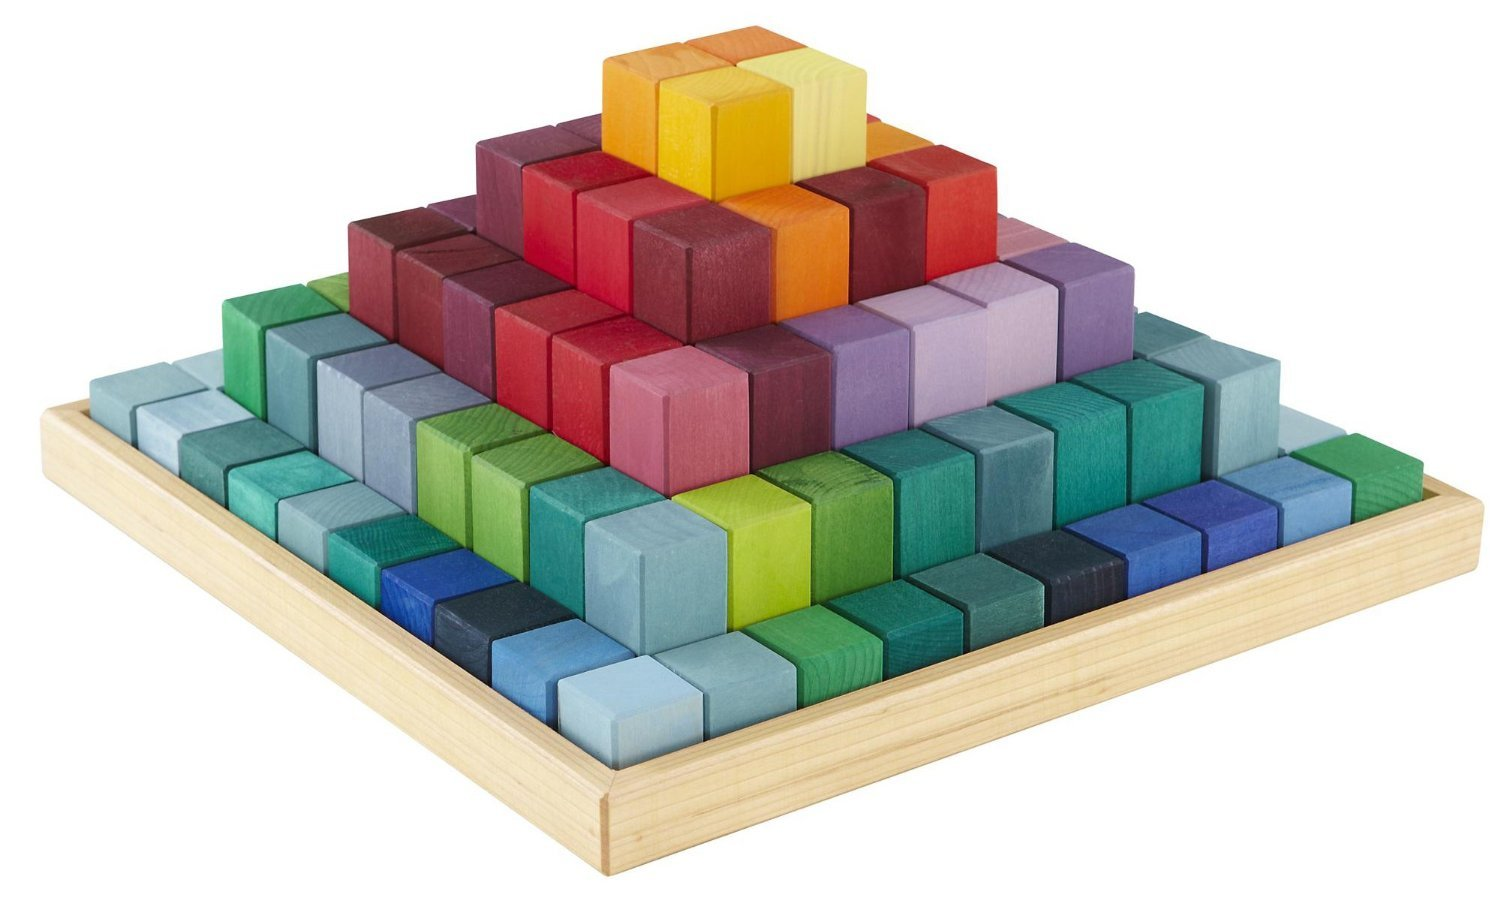 Grimm's Large Stepped Pyramid of Wooden Building Blocks, 100 Piece Learning Set (4x4 Size) by Grimm's Spiel and Holz Design (Image #3)